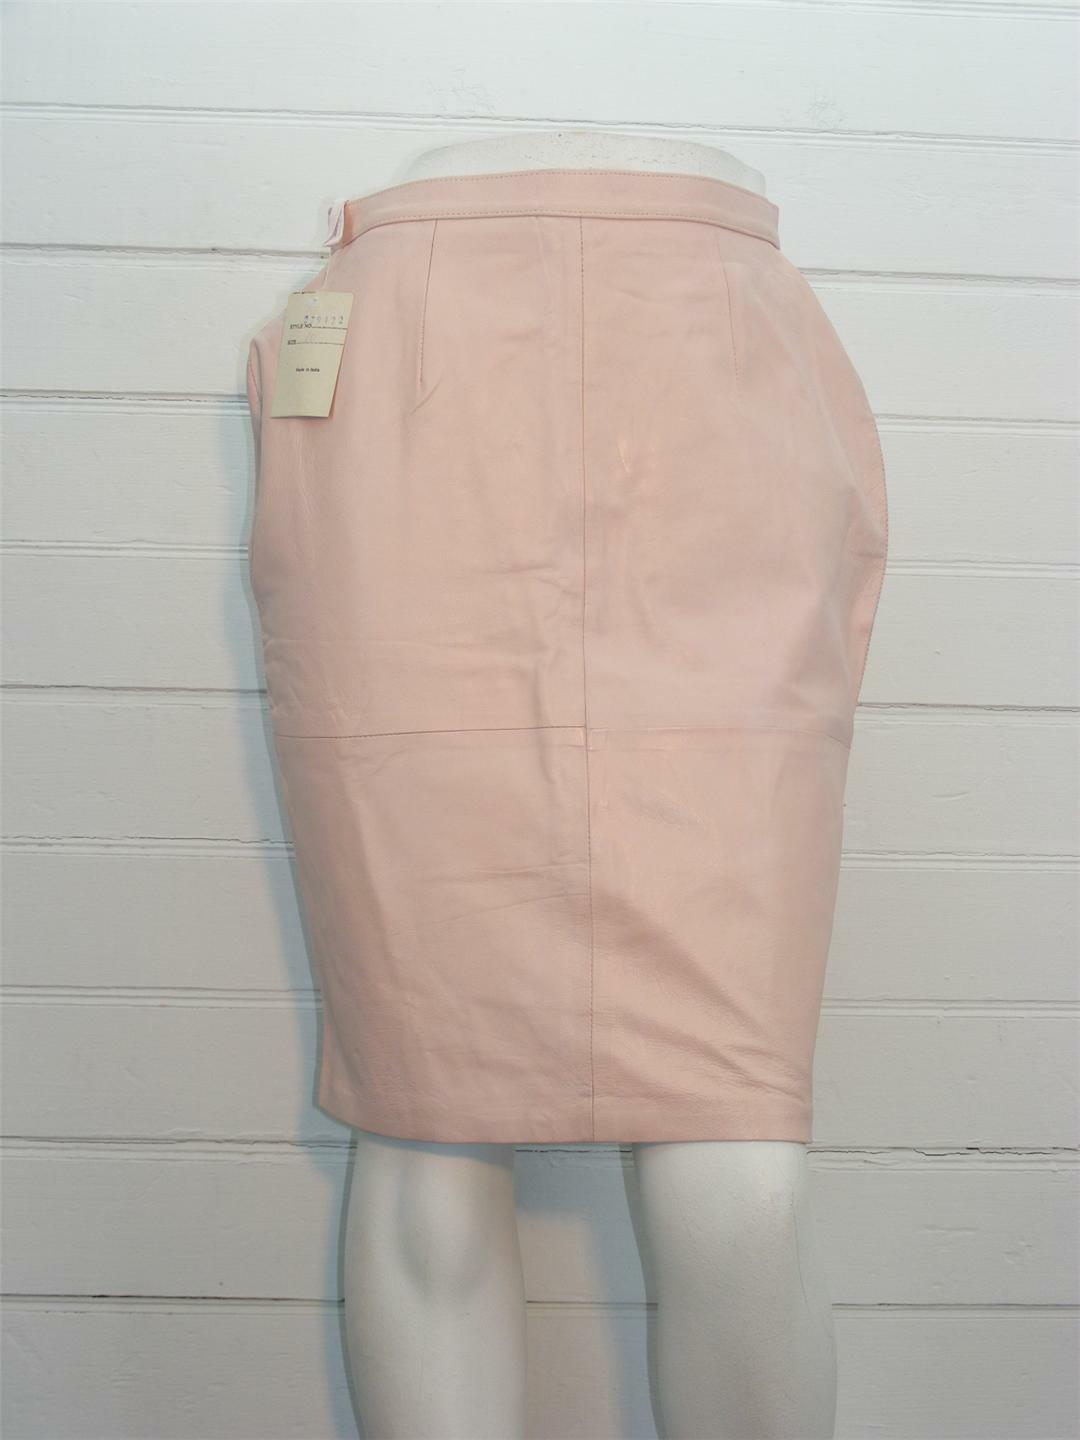 JEWEL QUEEN Skirt Light Pink Leather LINED Below Knee A-Line Sz 10 - W28  x L23